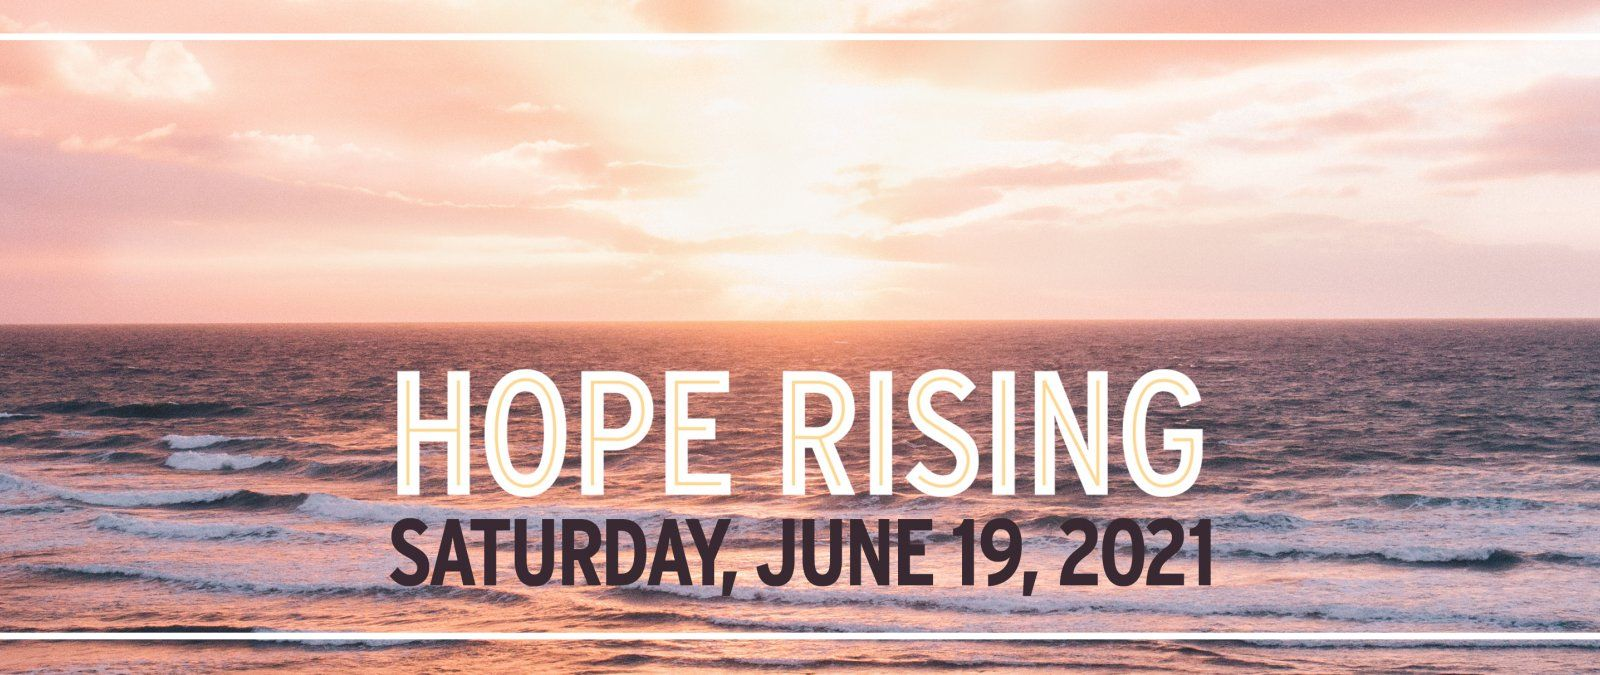 "Picture of the Ocean with text saying, ""Hope Rising Saturday, June 19,2021"""